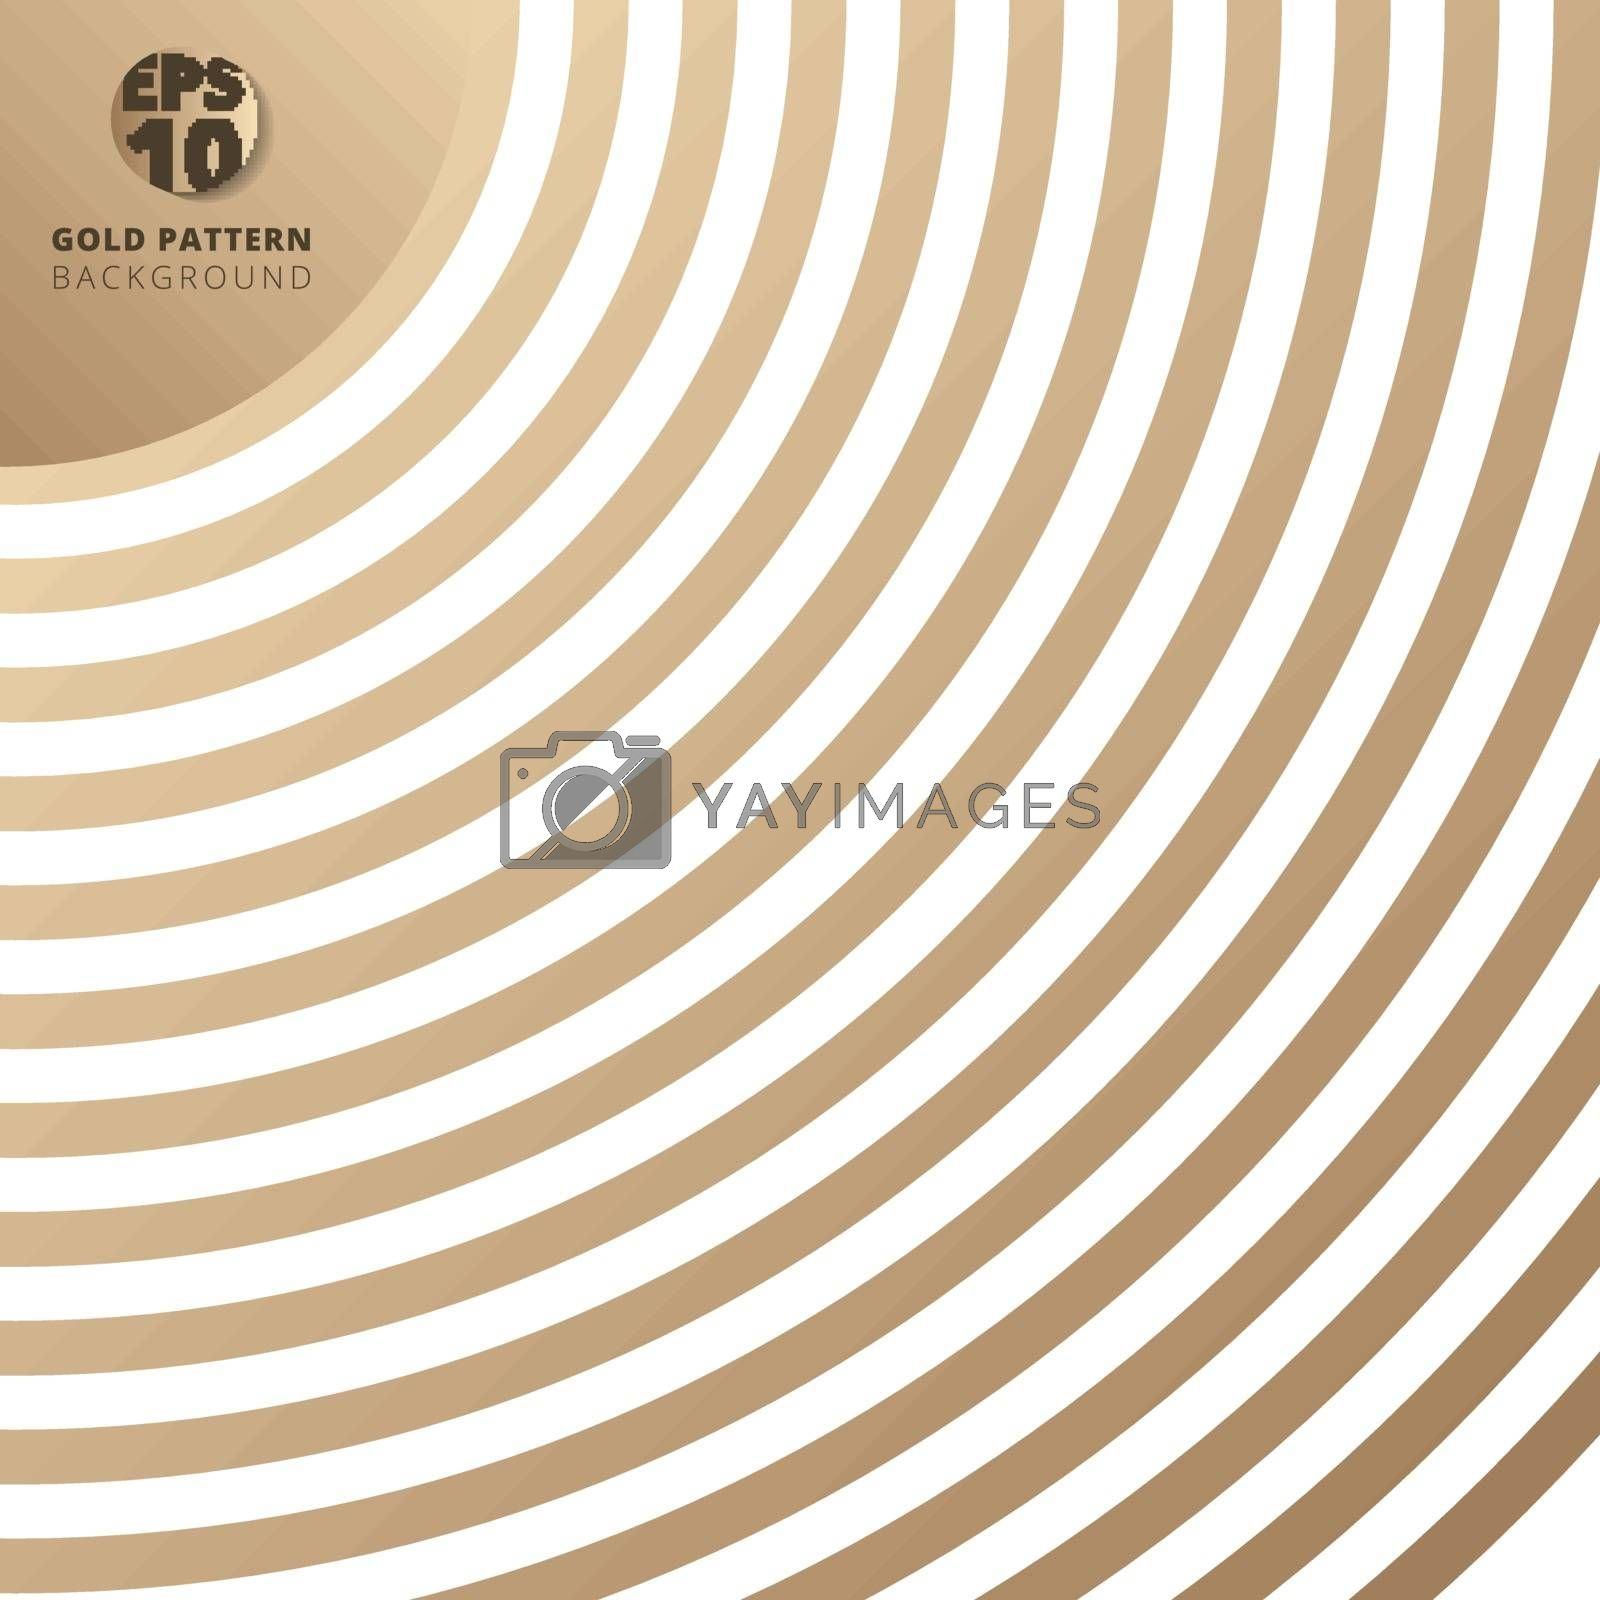 Abstract curve line pattern gold color on white background. Vector illustration.